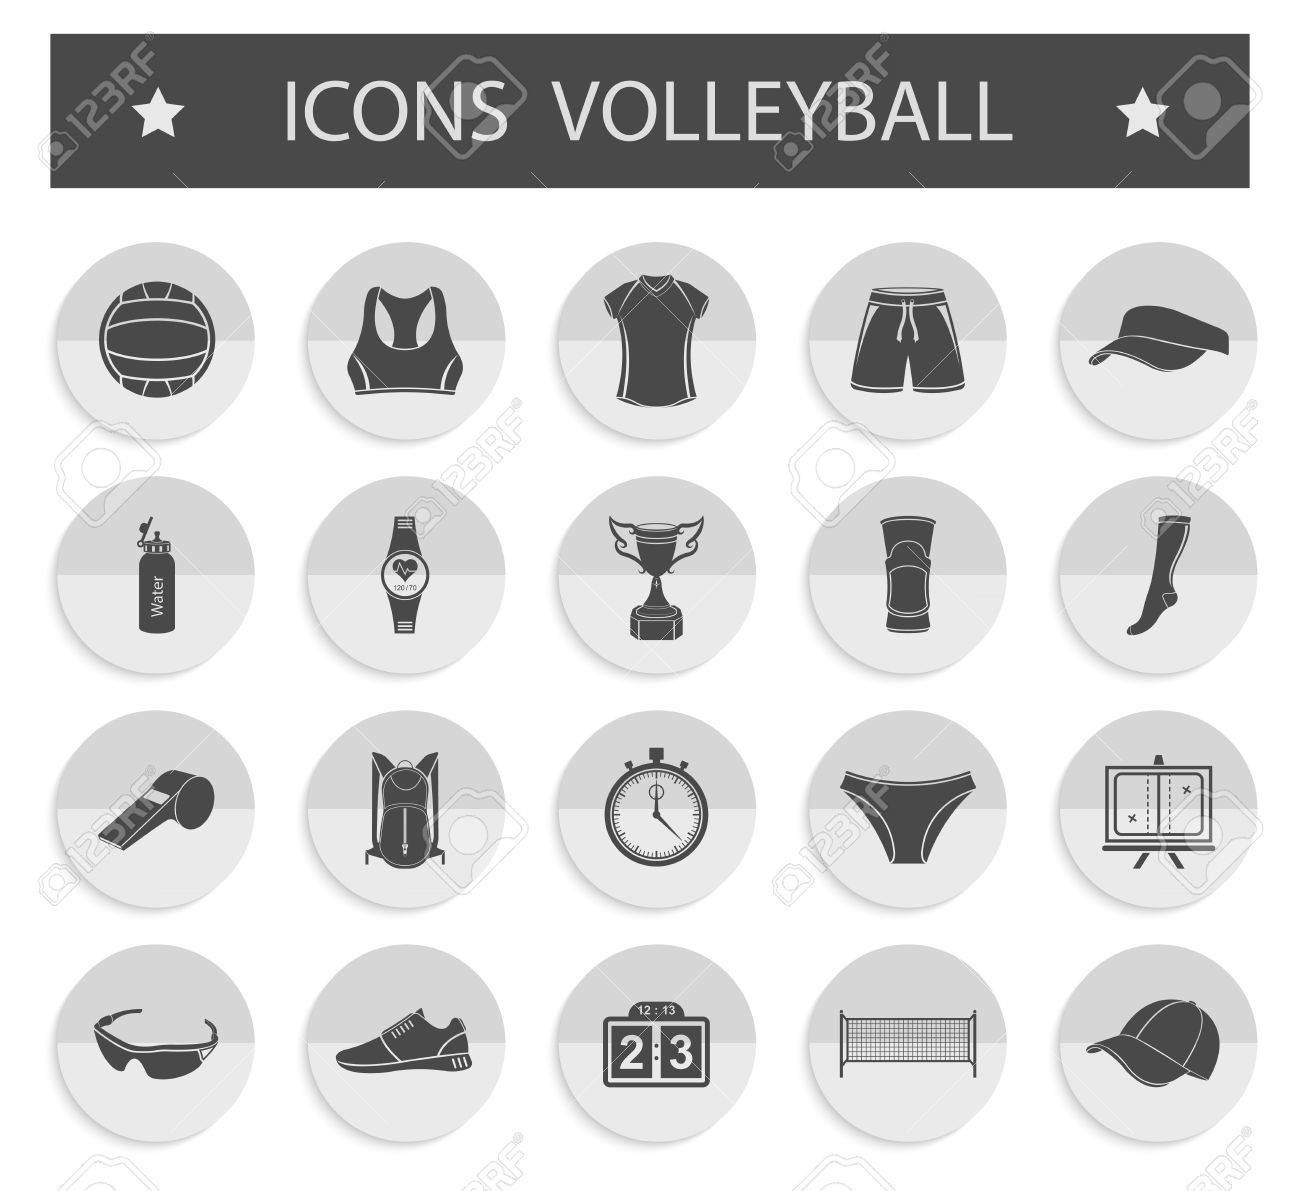 Volleyball icon set stock vector large set of symbols logos volleyball icon set stock vector large set of symbols logos and icons of buycottarizona